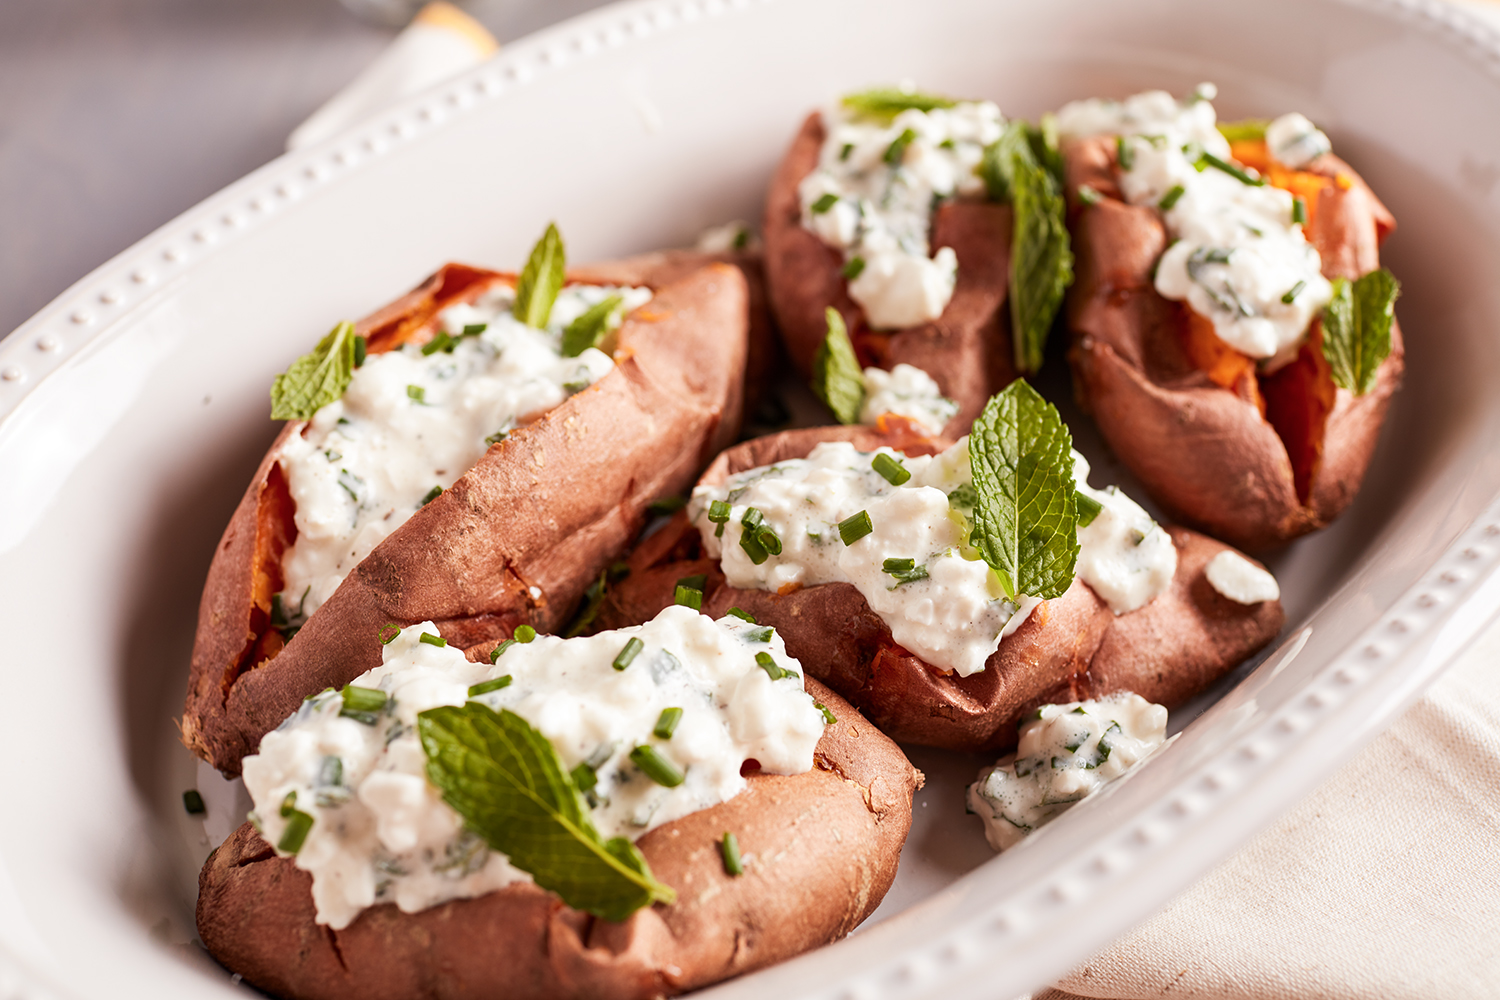 Stuffed Sweet Potatoes with herb cheese